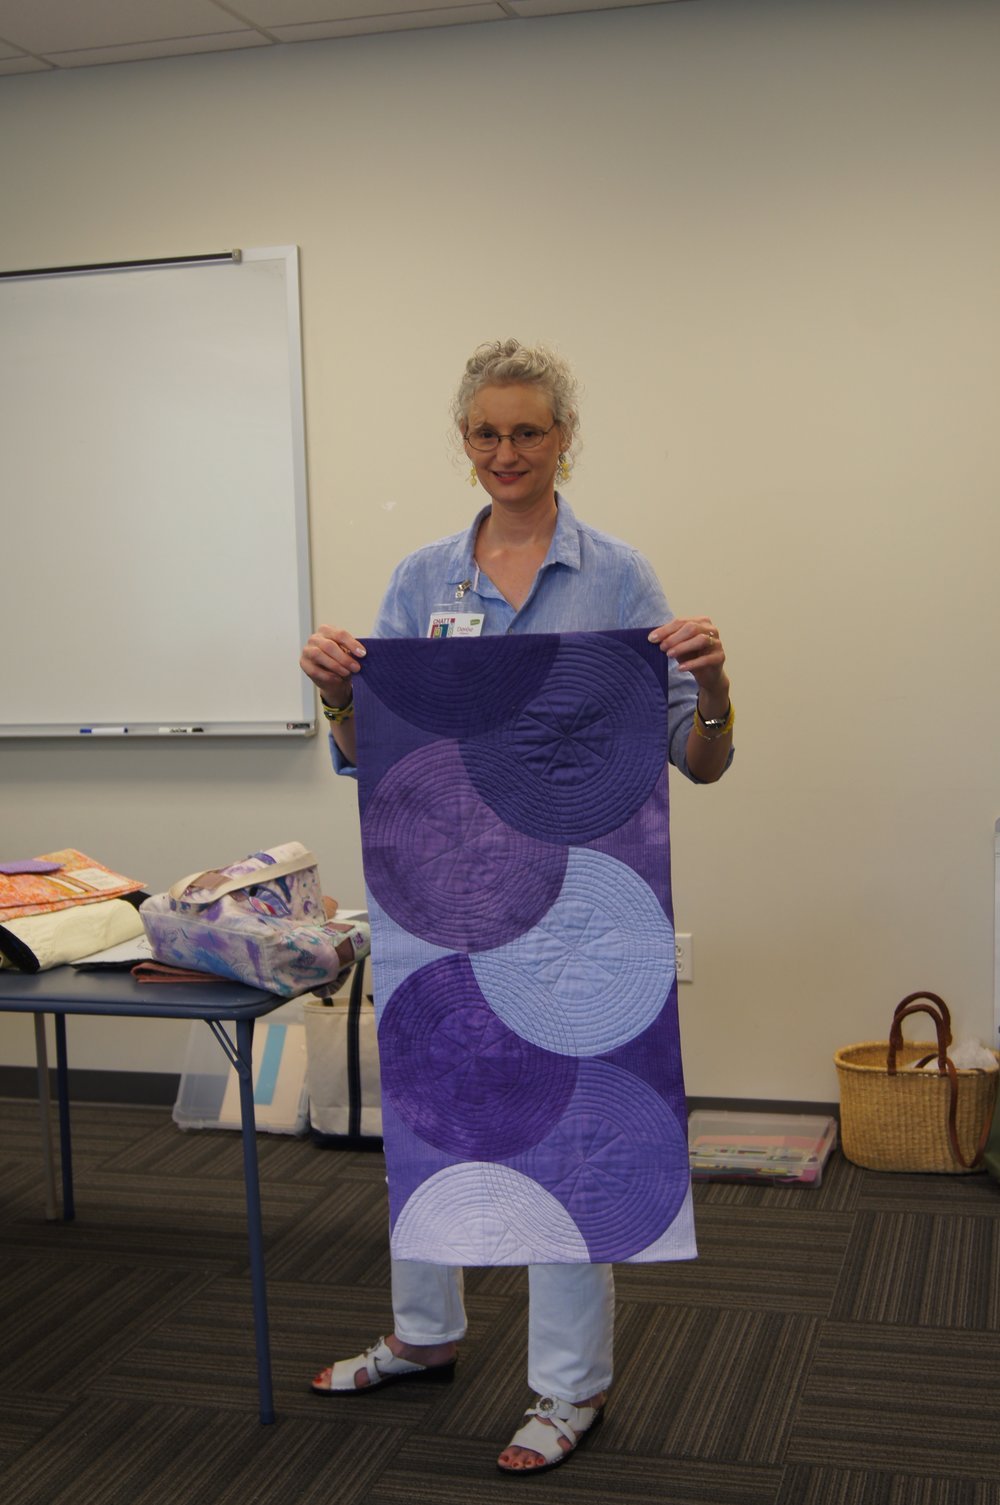 Quilt by Denise Ohlman